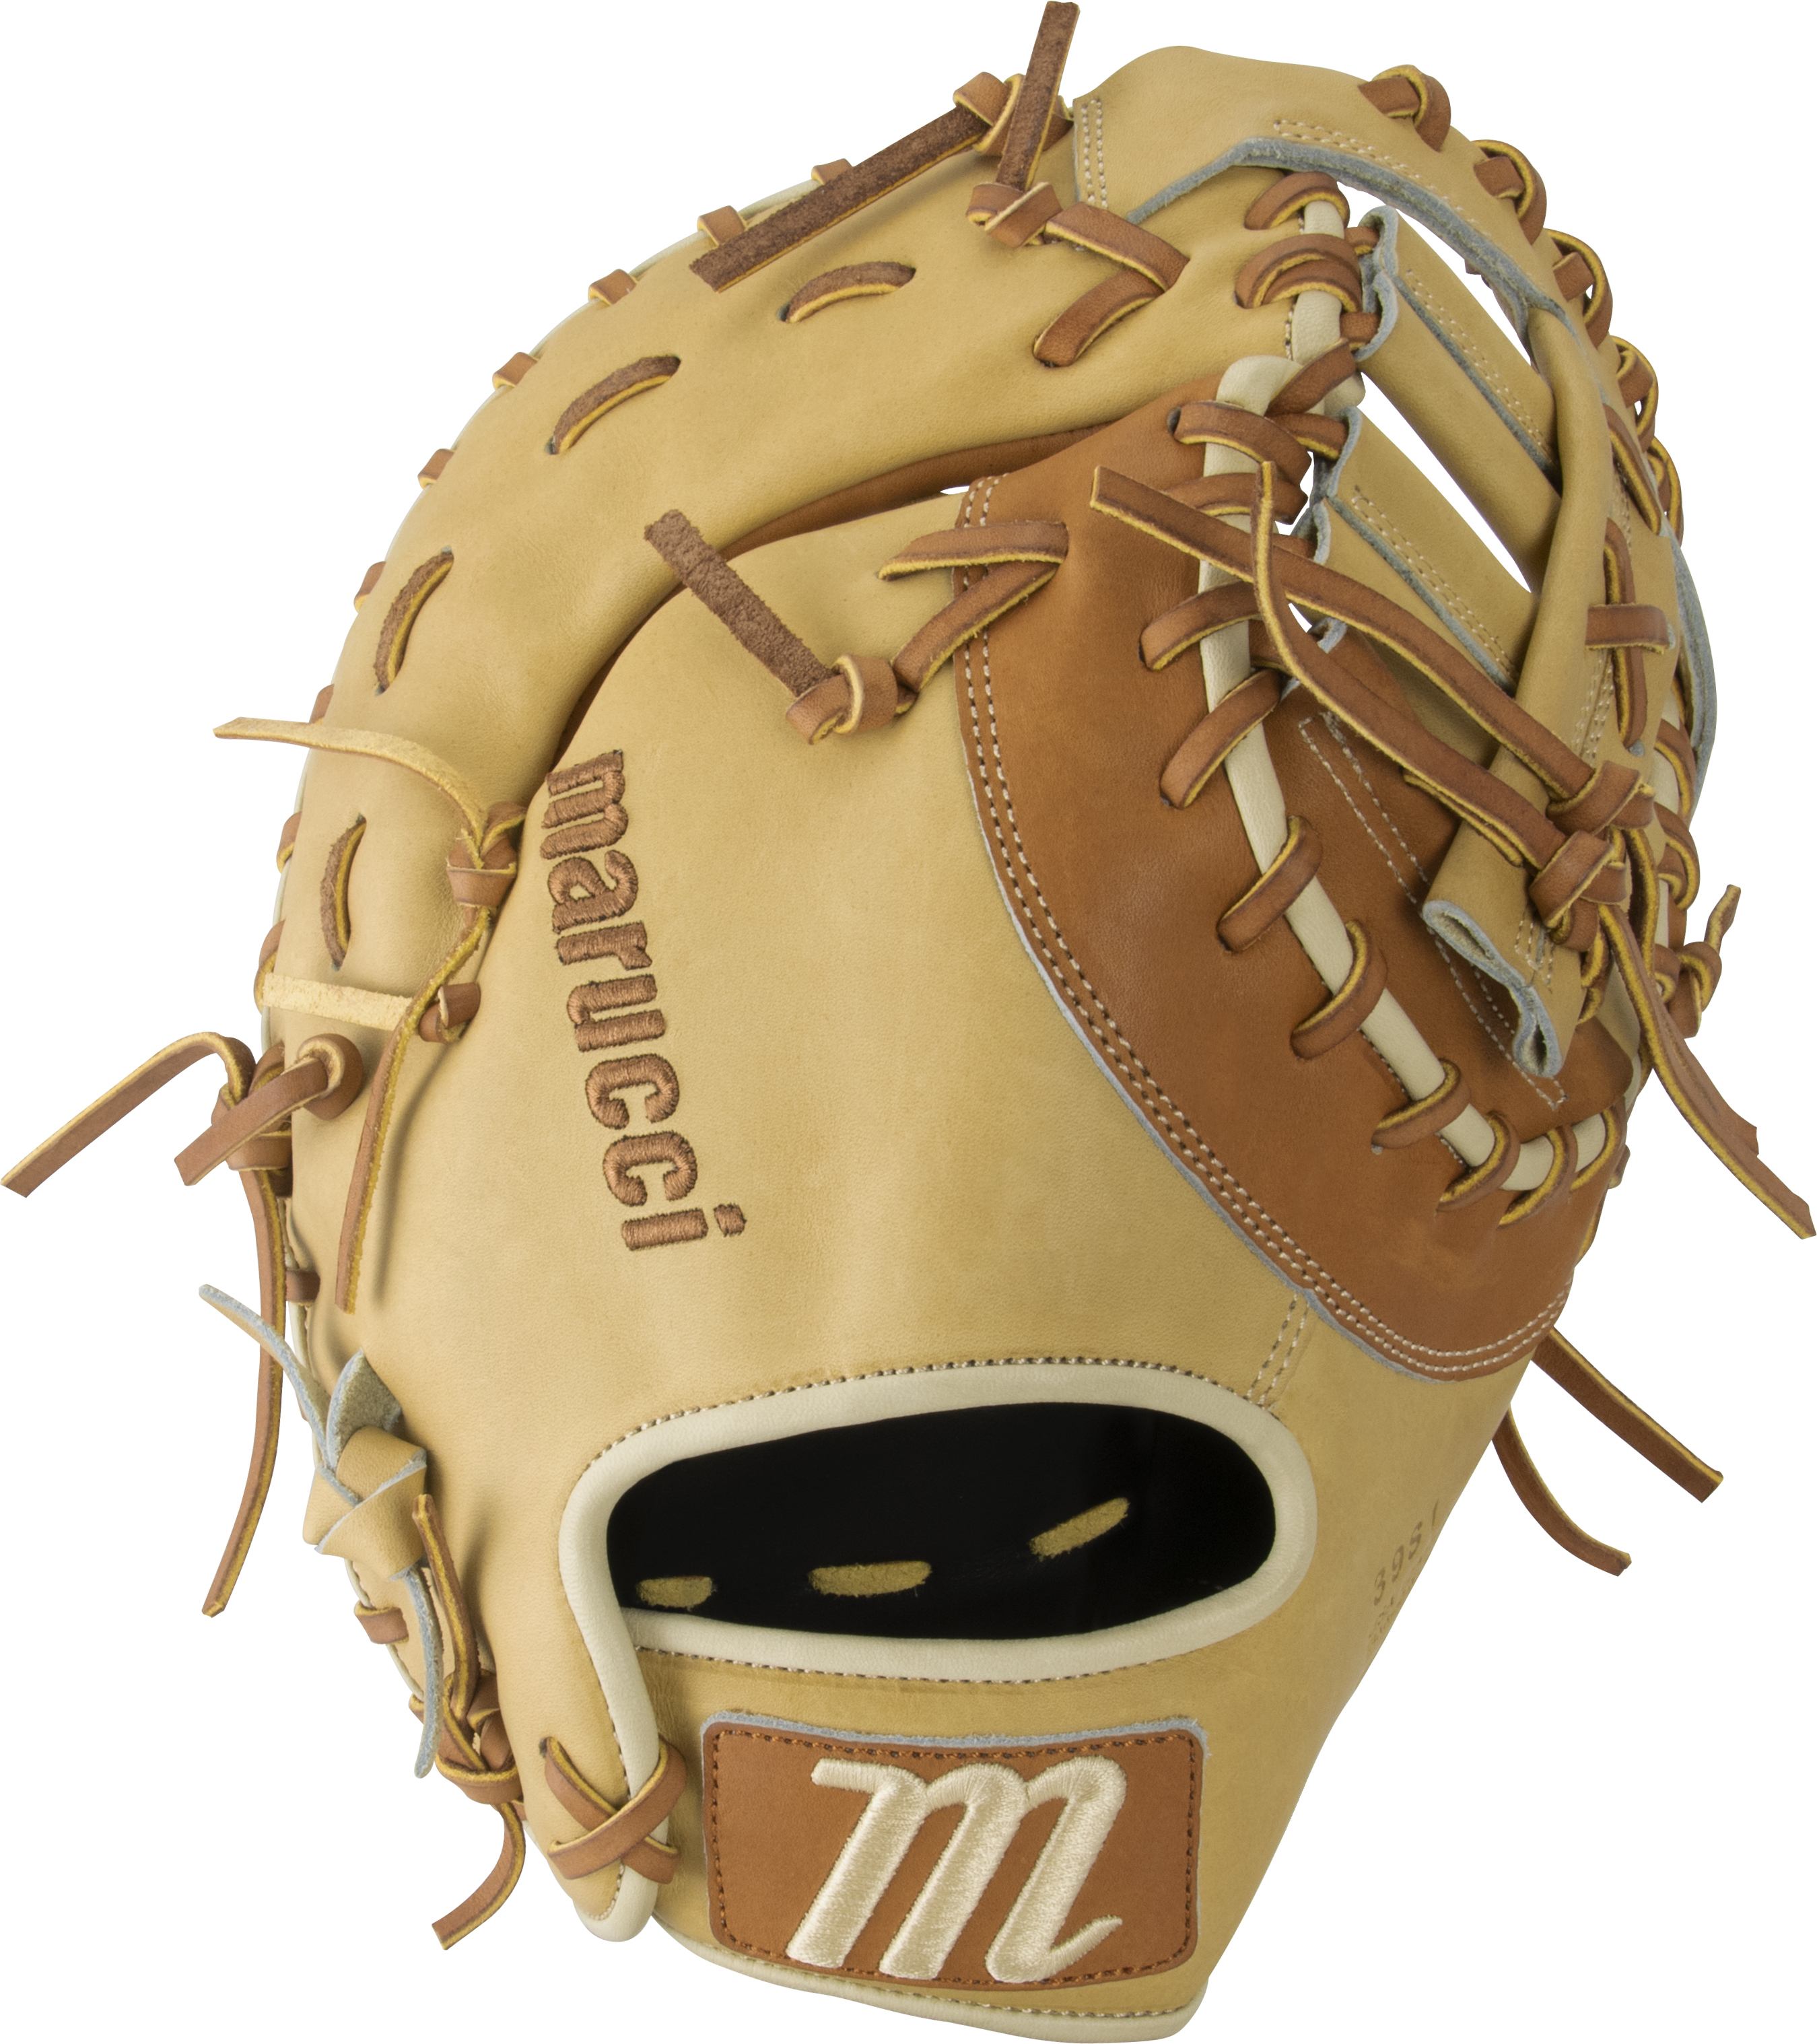 marucci-cypress-13-baseball-glove-39s1-first-base-mitt-post-web-left-hand-throw MFGCY39S1-SMTF-LeftHandThrow Marucci  849817099445 • Premium Japanese-tanned steerhide leather provides stiffness and rugged durability •